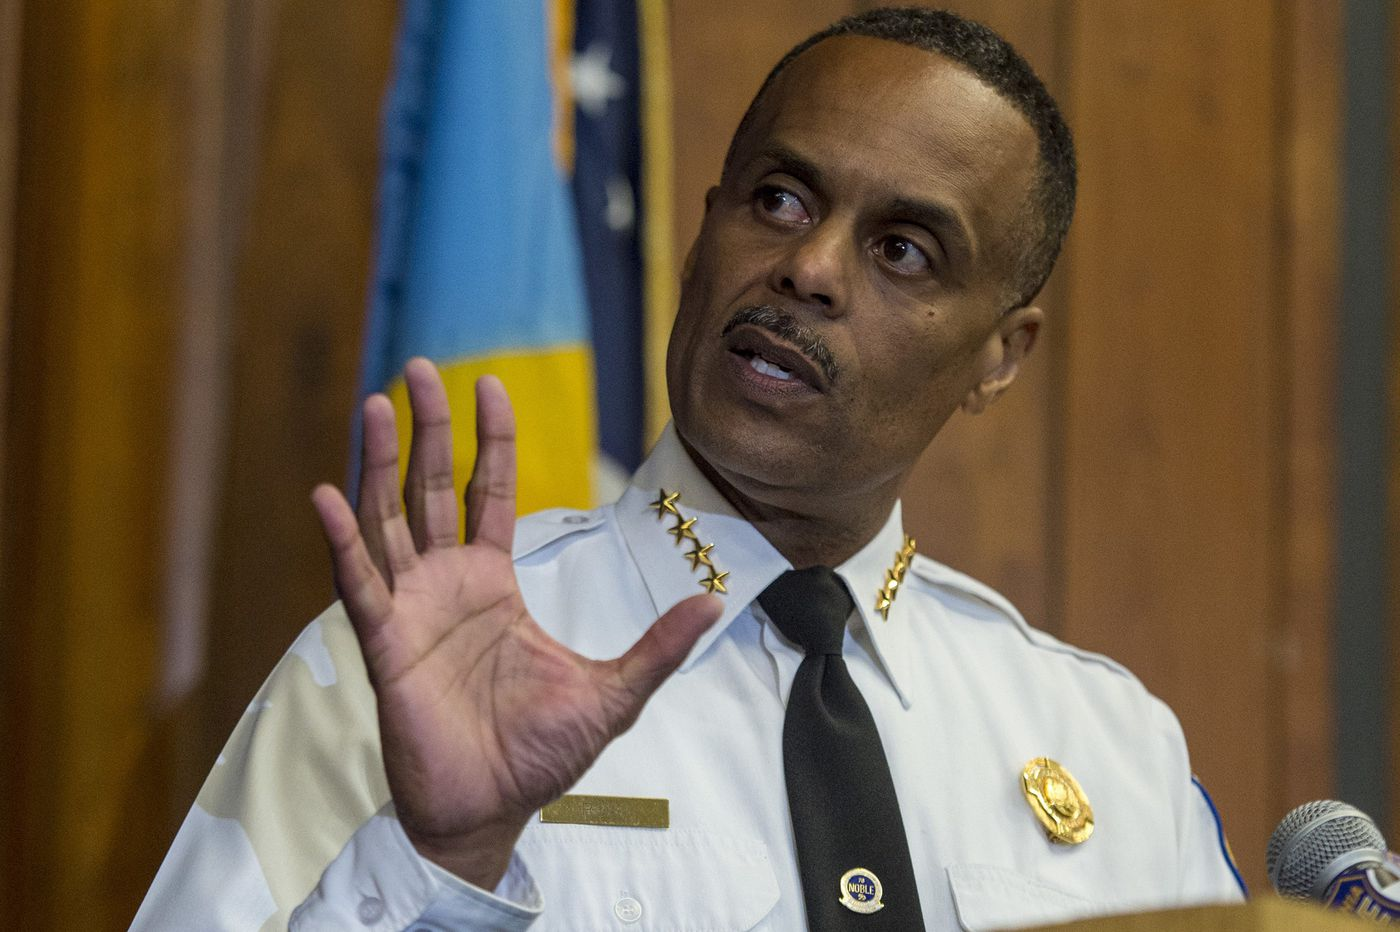 Police Commissioner Ross to Philly news organizations after Md. shootings: 'We take this very seriously'